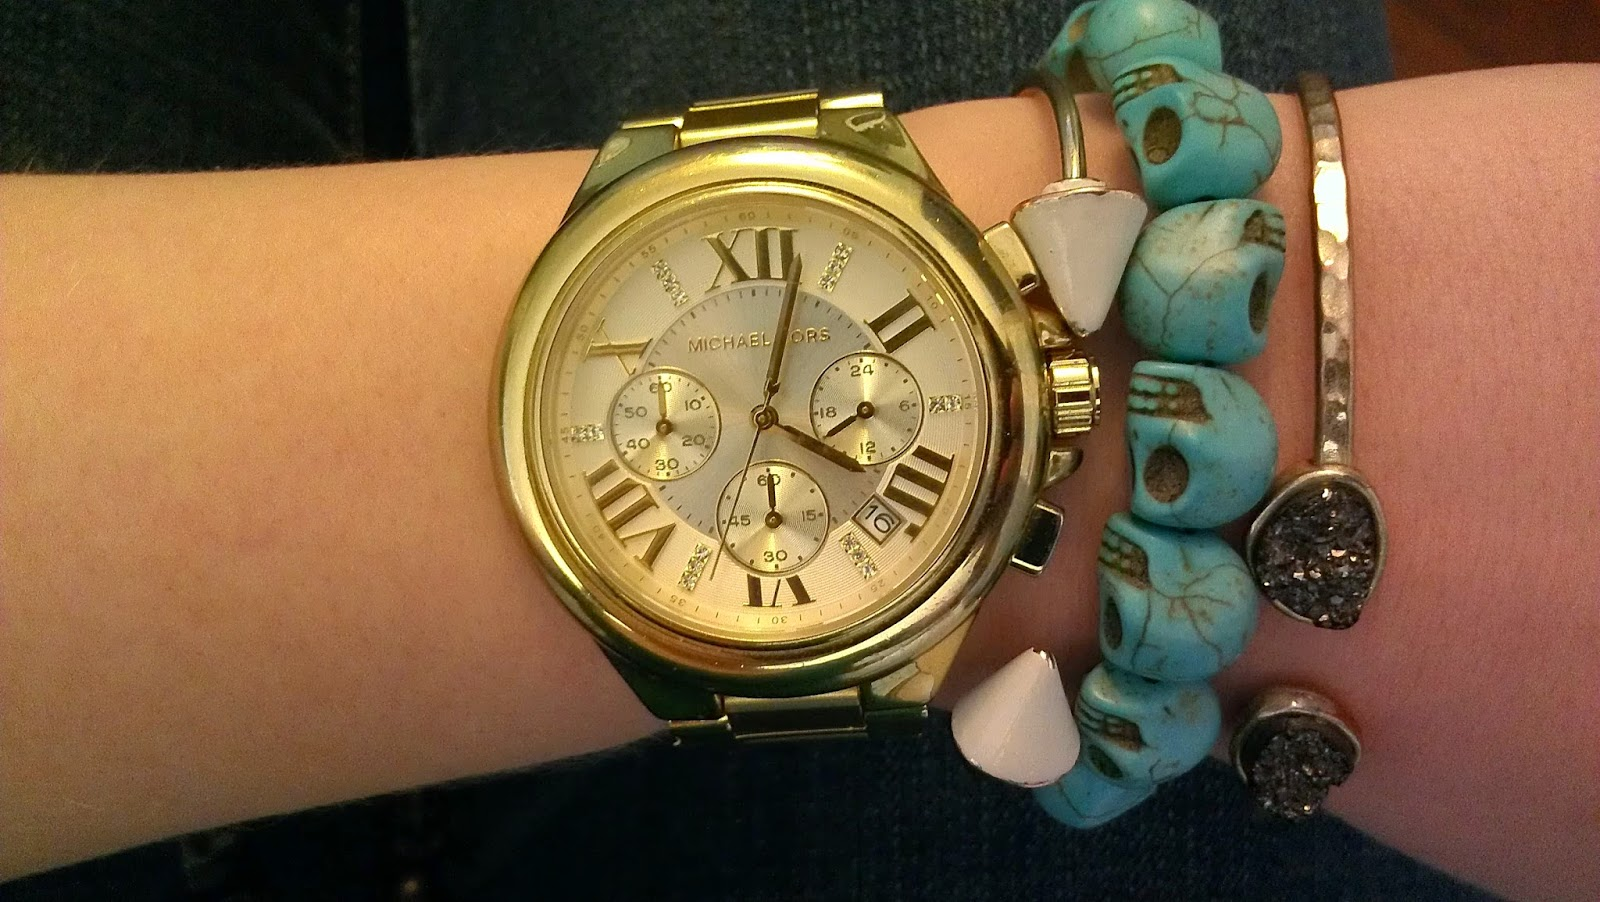 The Arm Candy Game